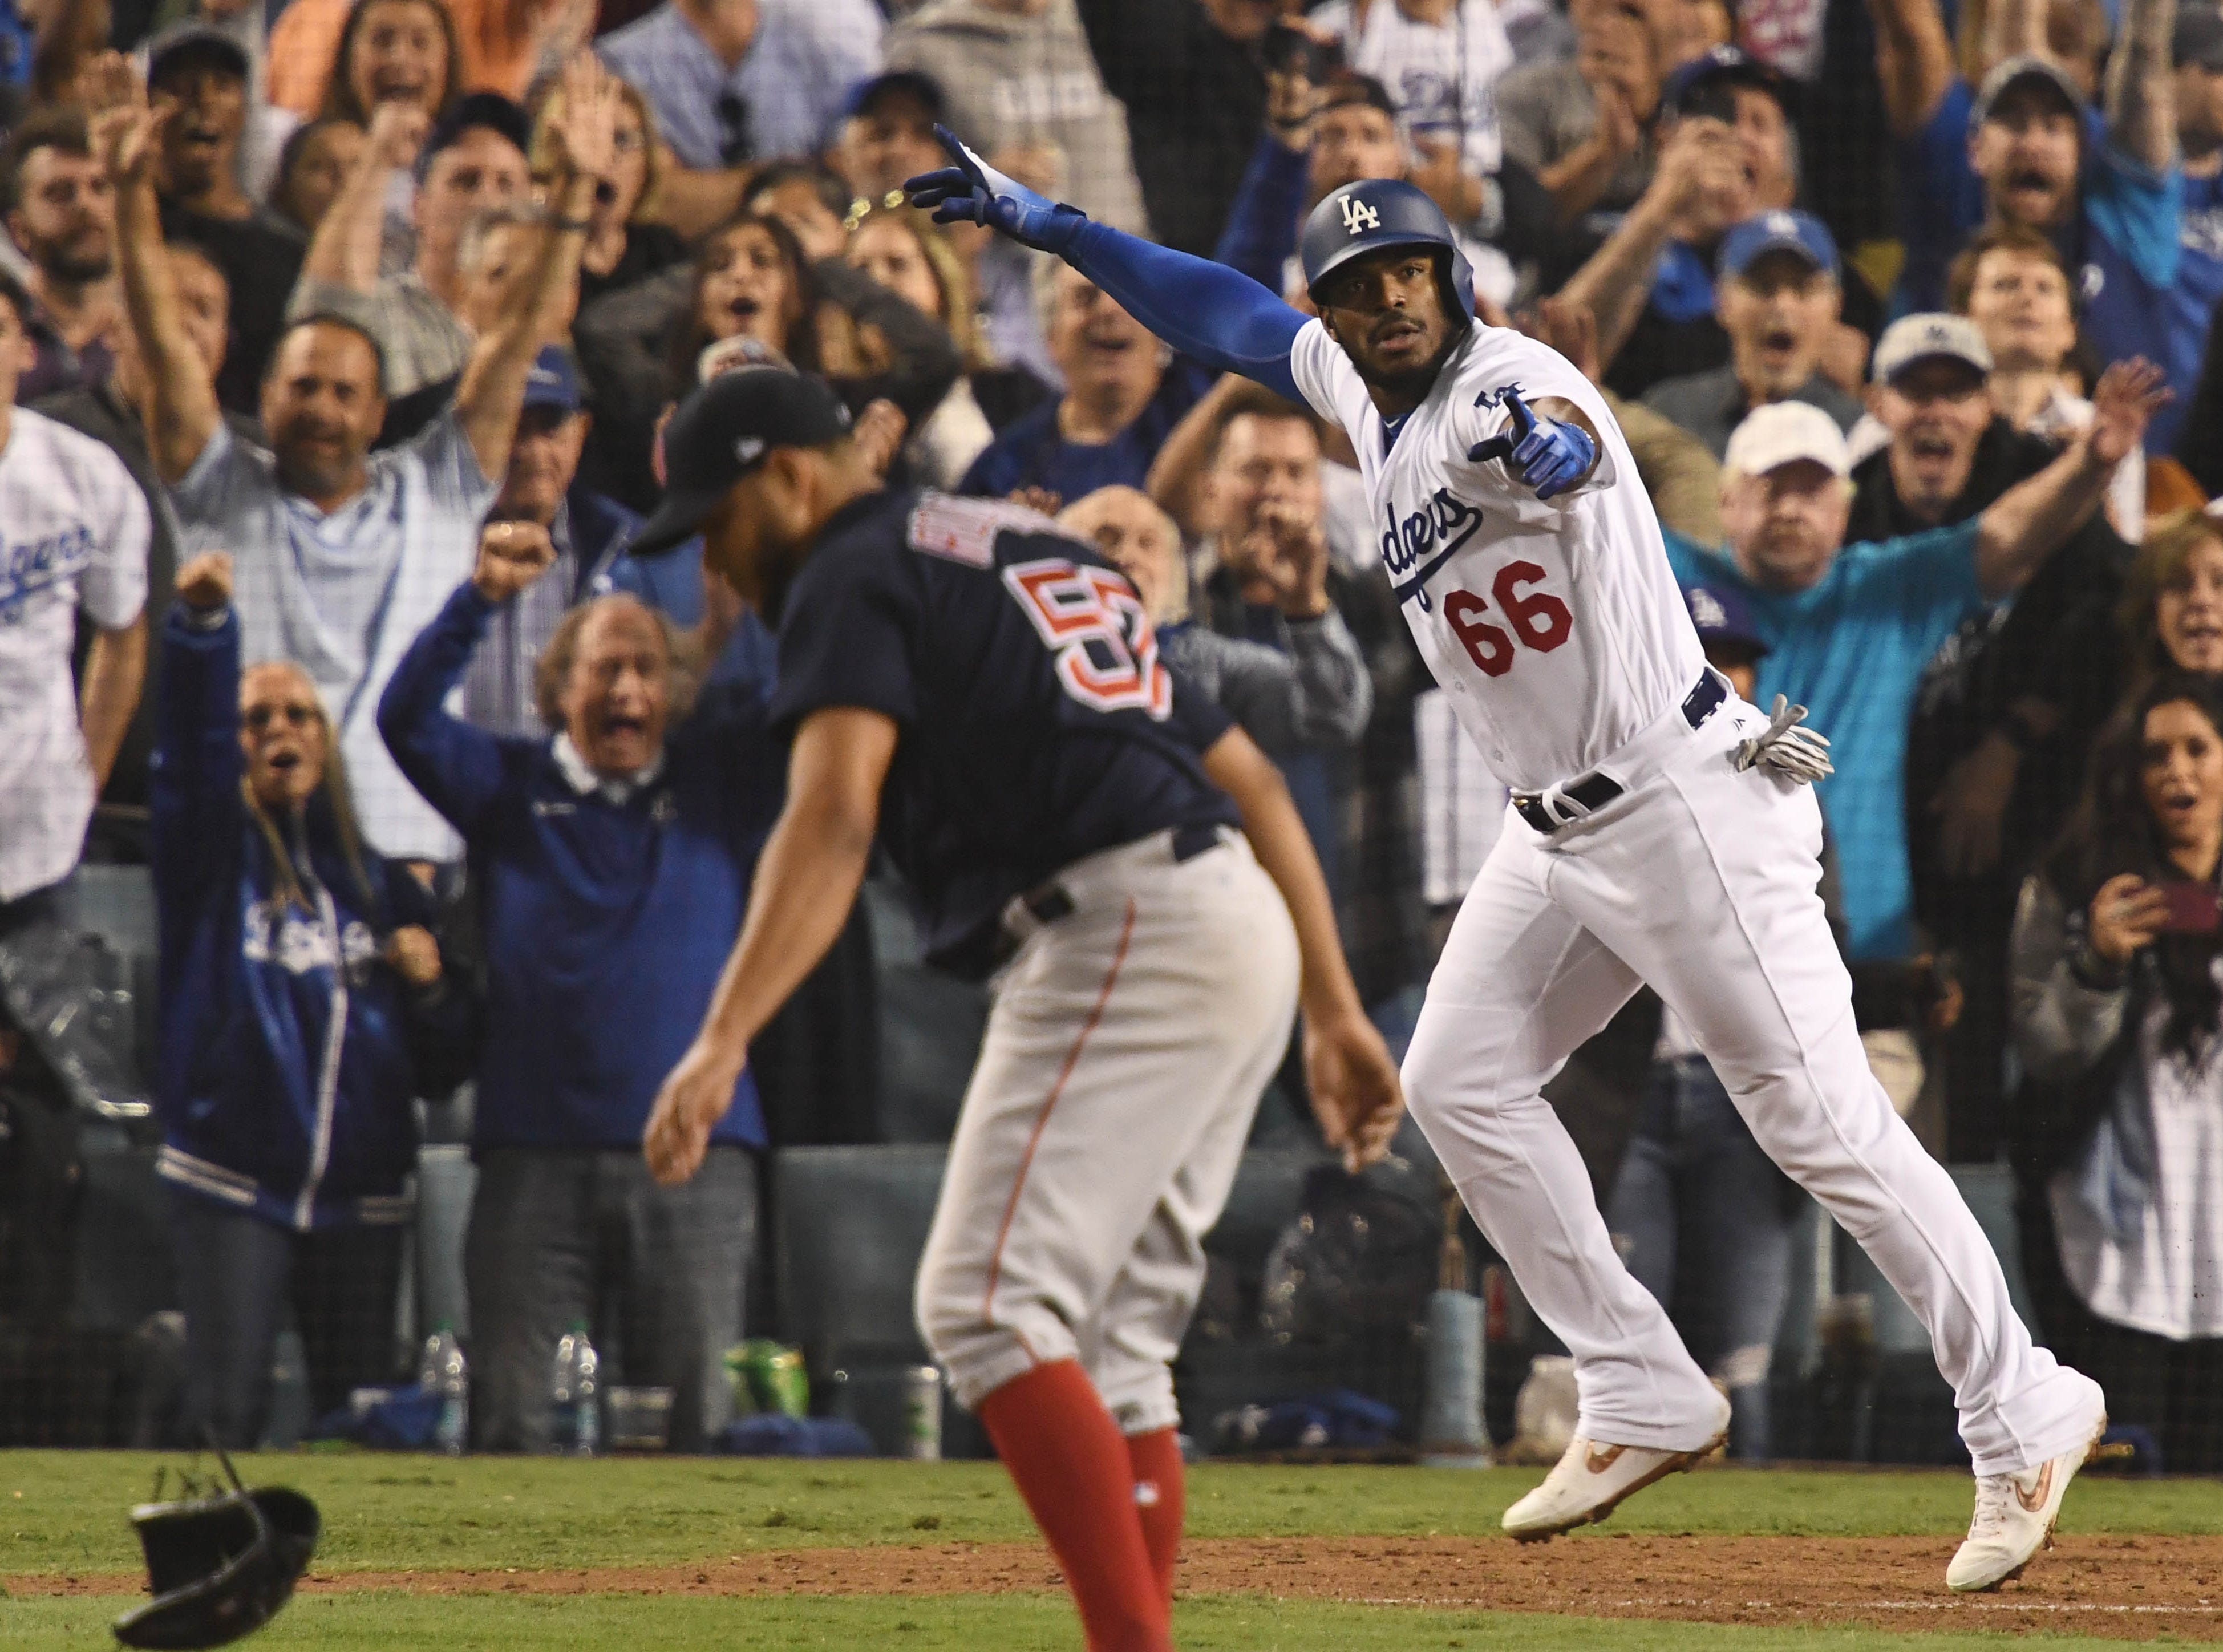 Game 4 at Dodger Stadium: Yasiel Puig celebrates his three-run homer in the sixth while Red Sox pitcher Eduardo Rodriguez spikes his glove.